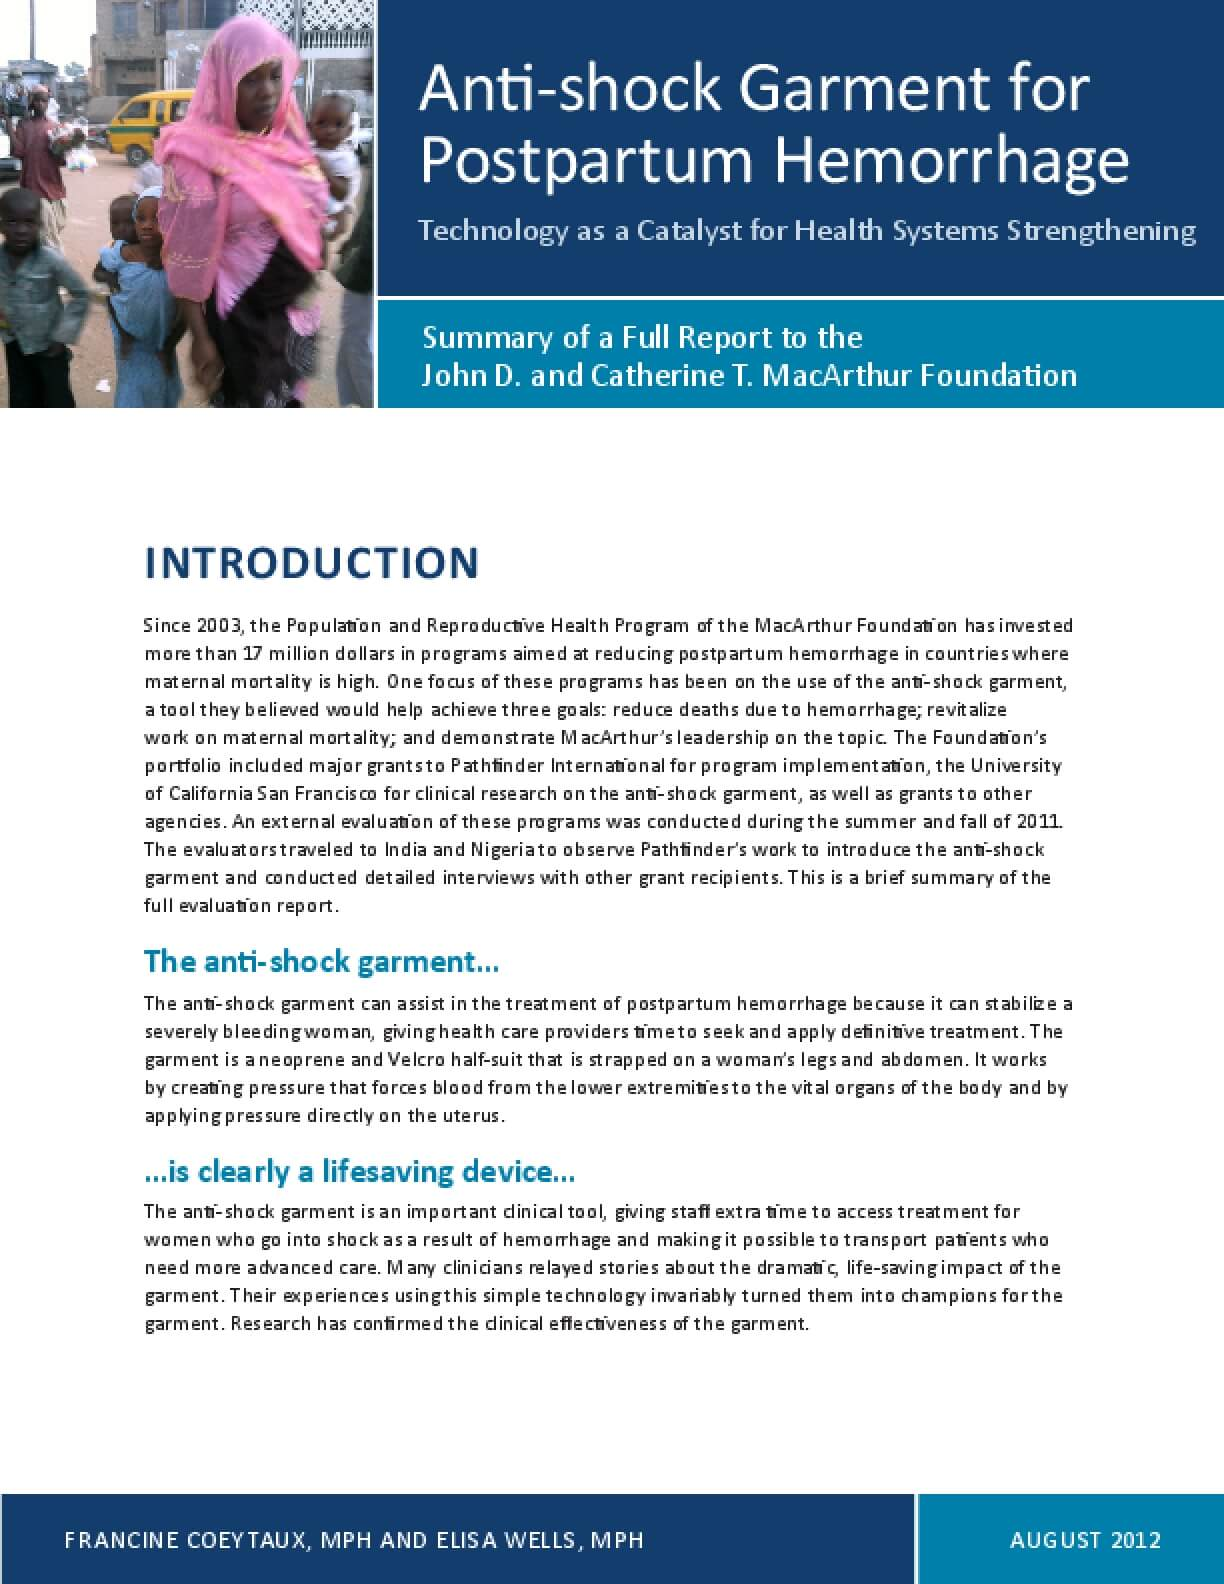 Summary Report: Anti-shock Garment for Postpartum Hemorrhage: Technology as a Catalyst for Health Systems Strengthening